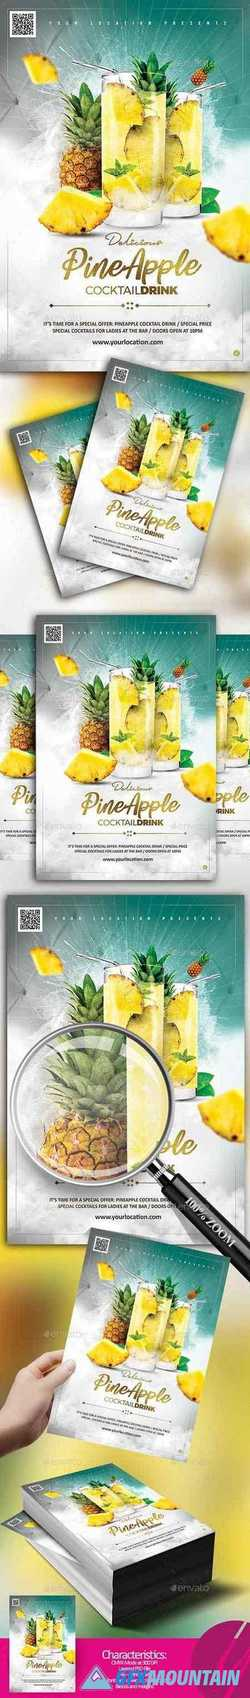 Pineapple Cocktail Drink Flyer 22363147